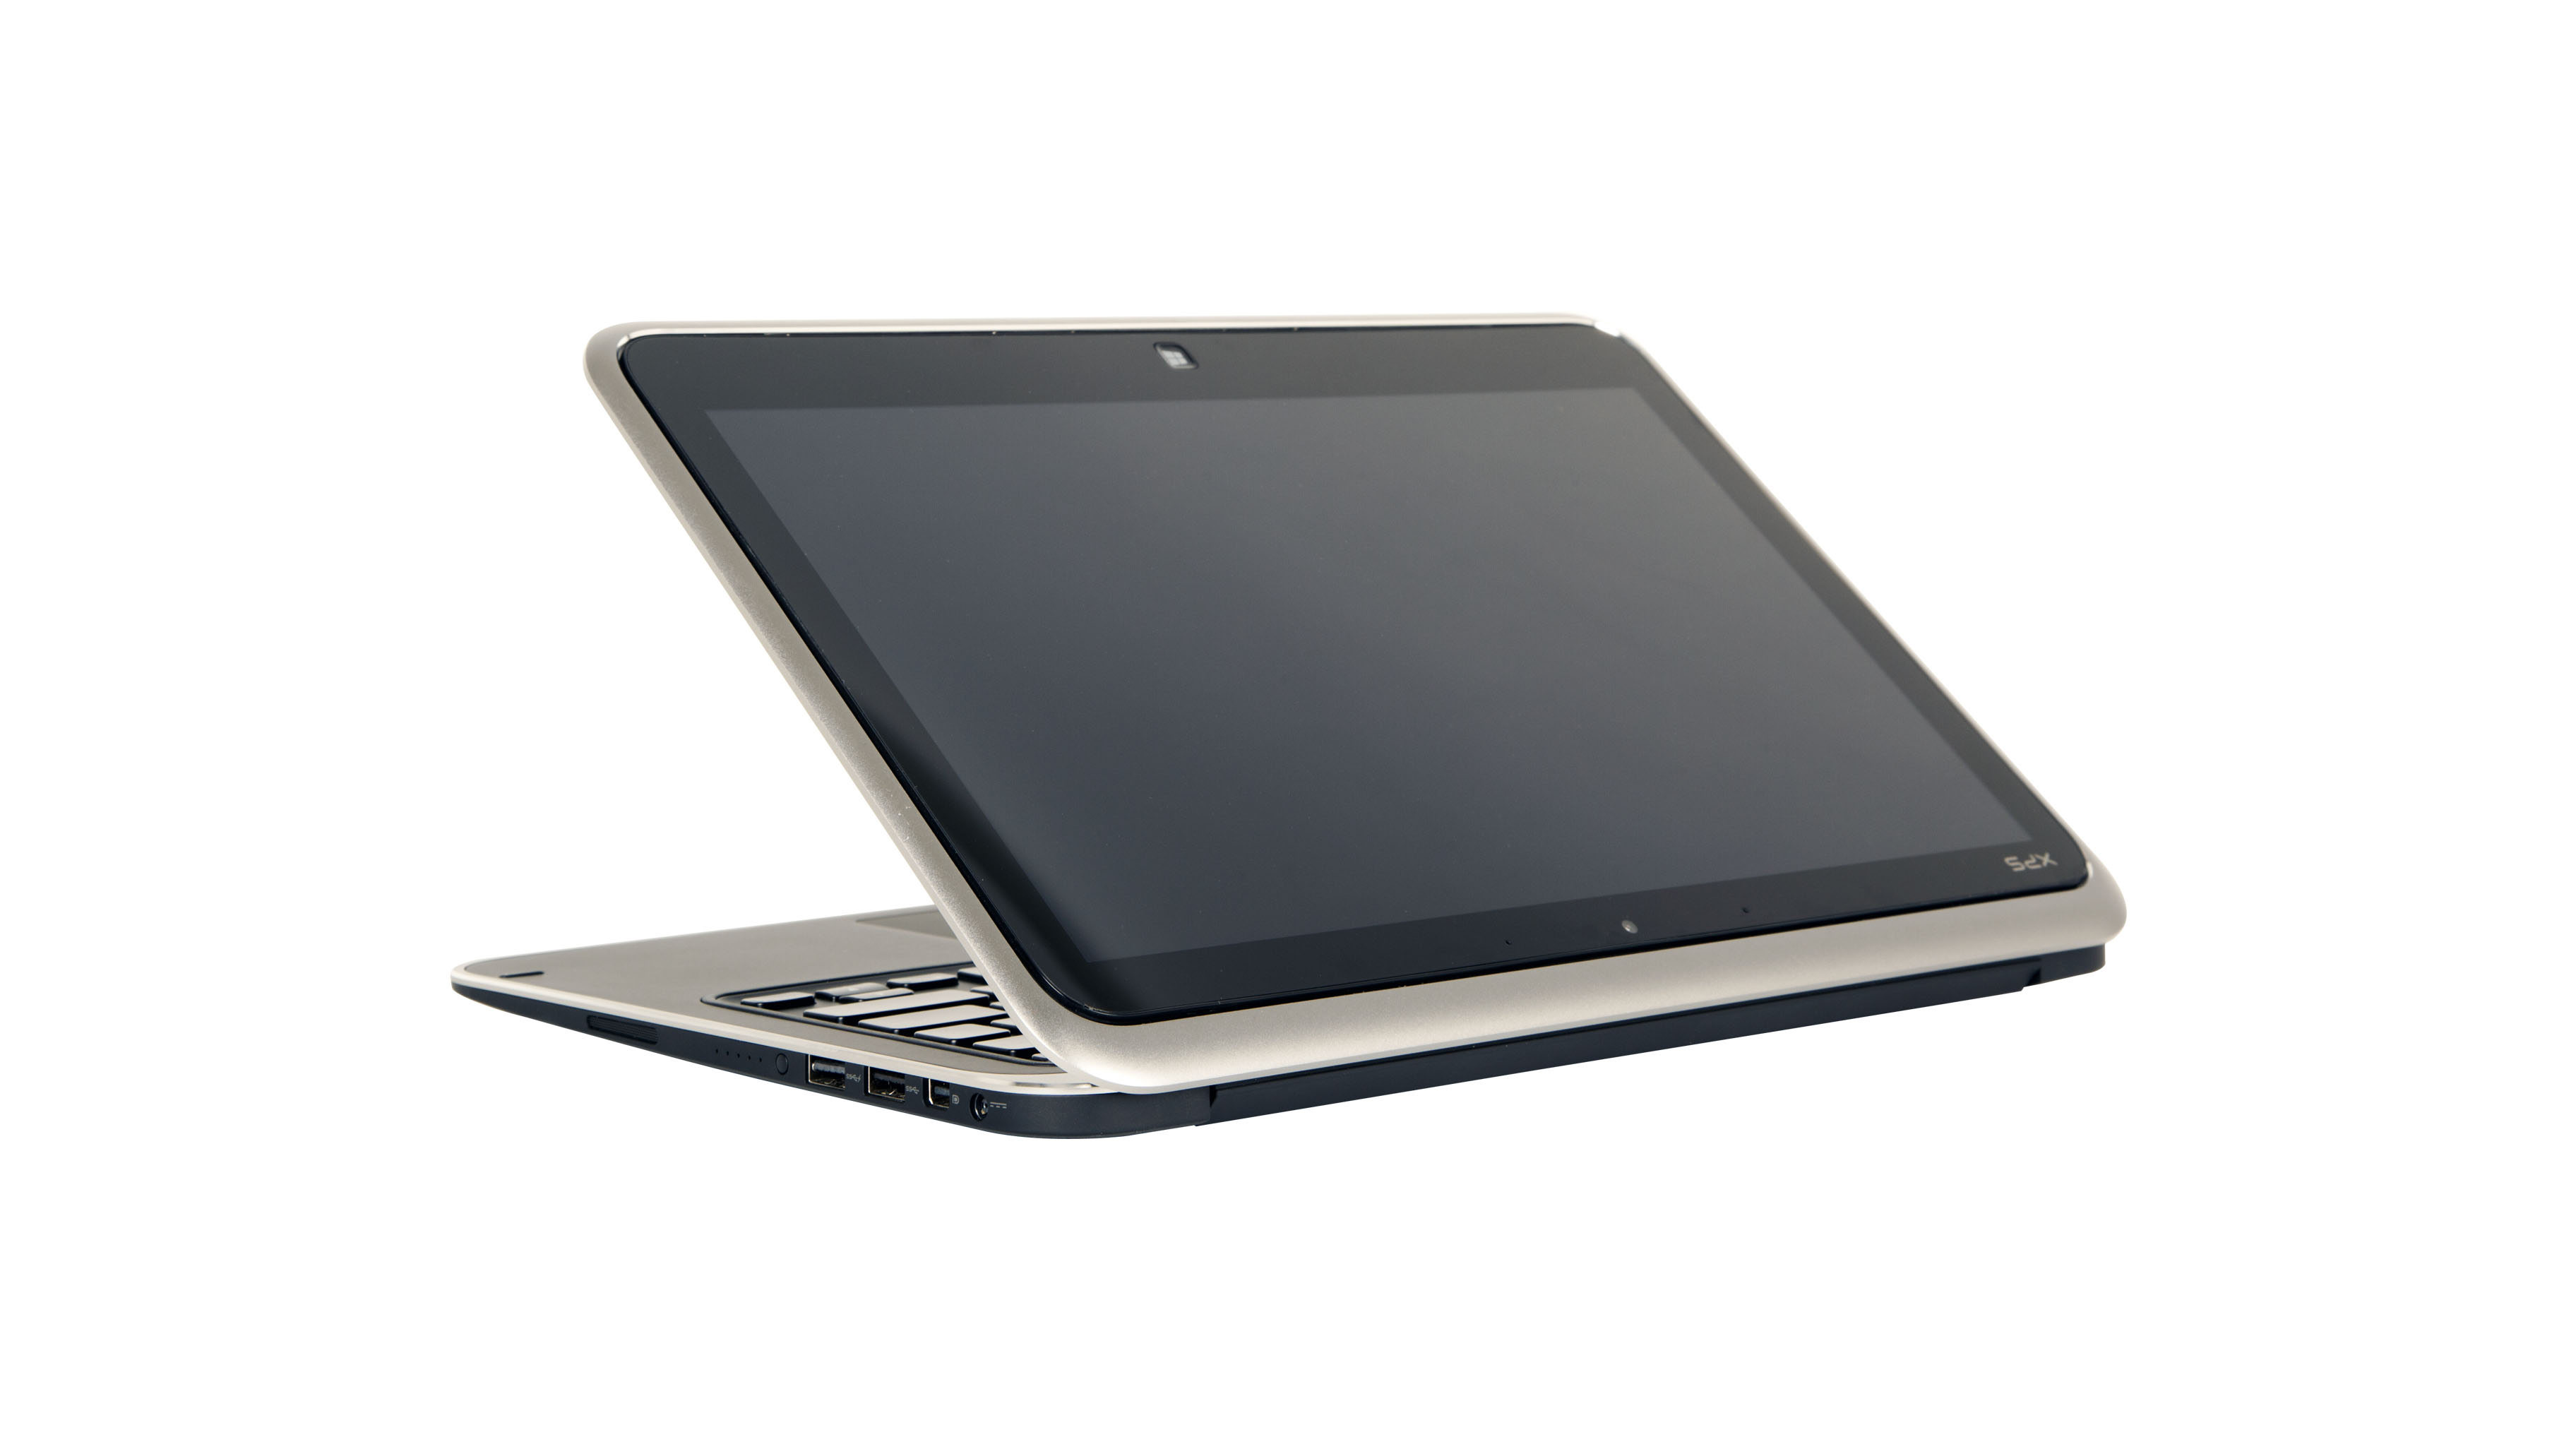 Ultra responsive. Ultra sleek. Ultrabook™ - Inspired by Intel.